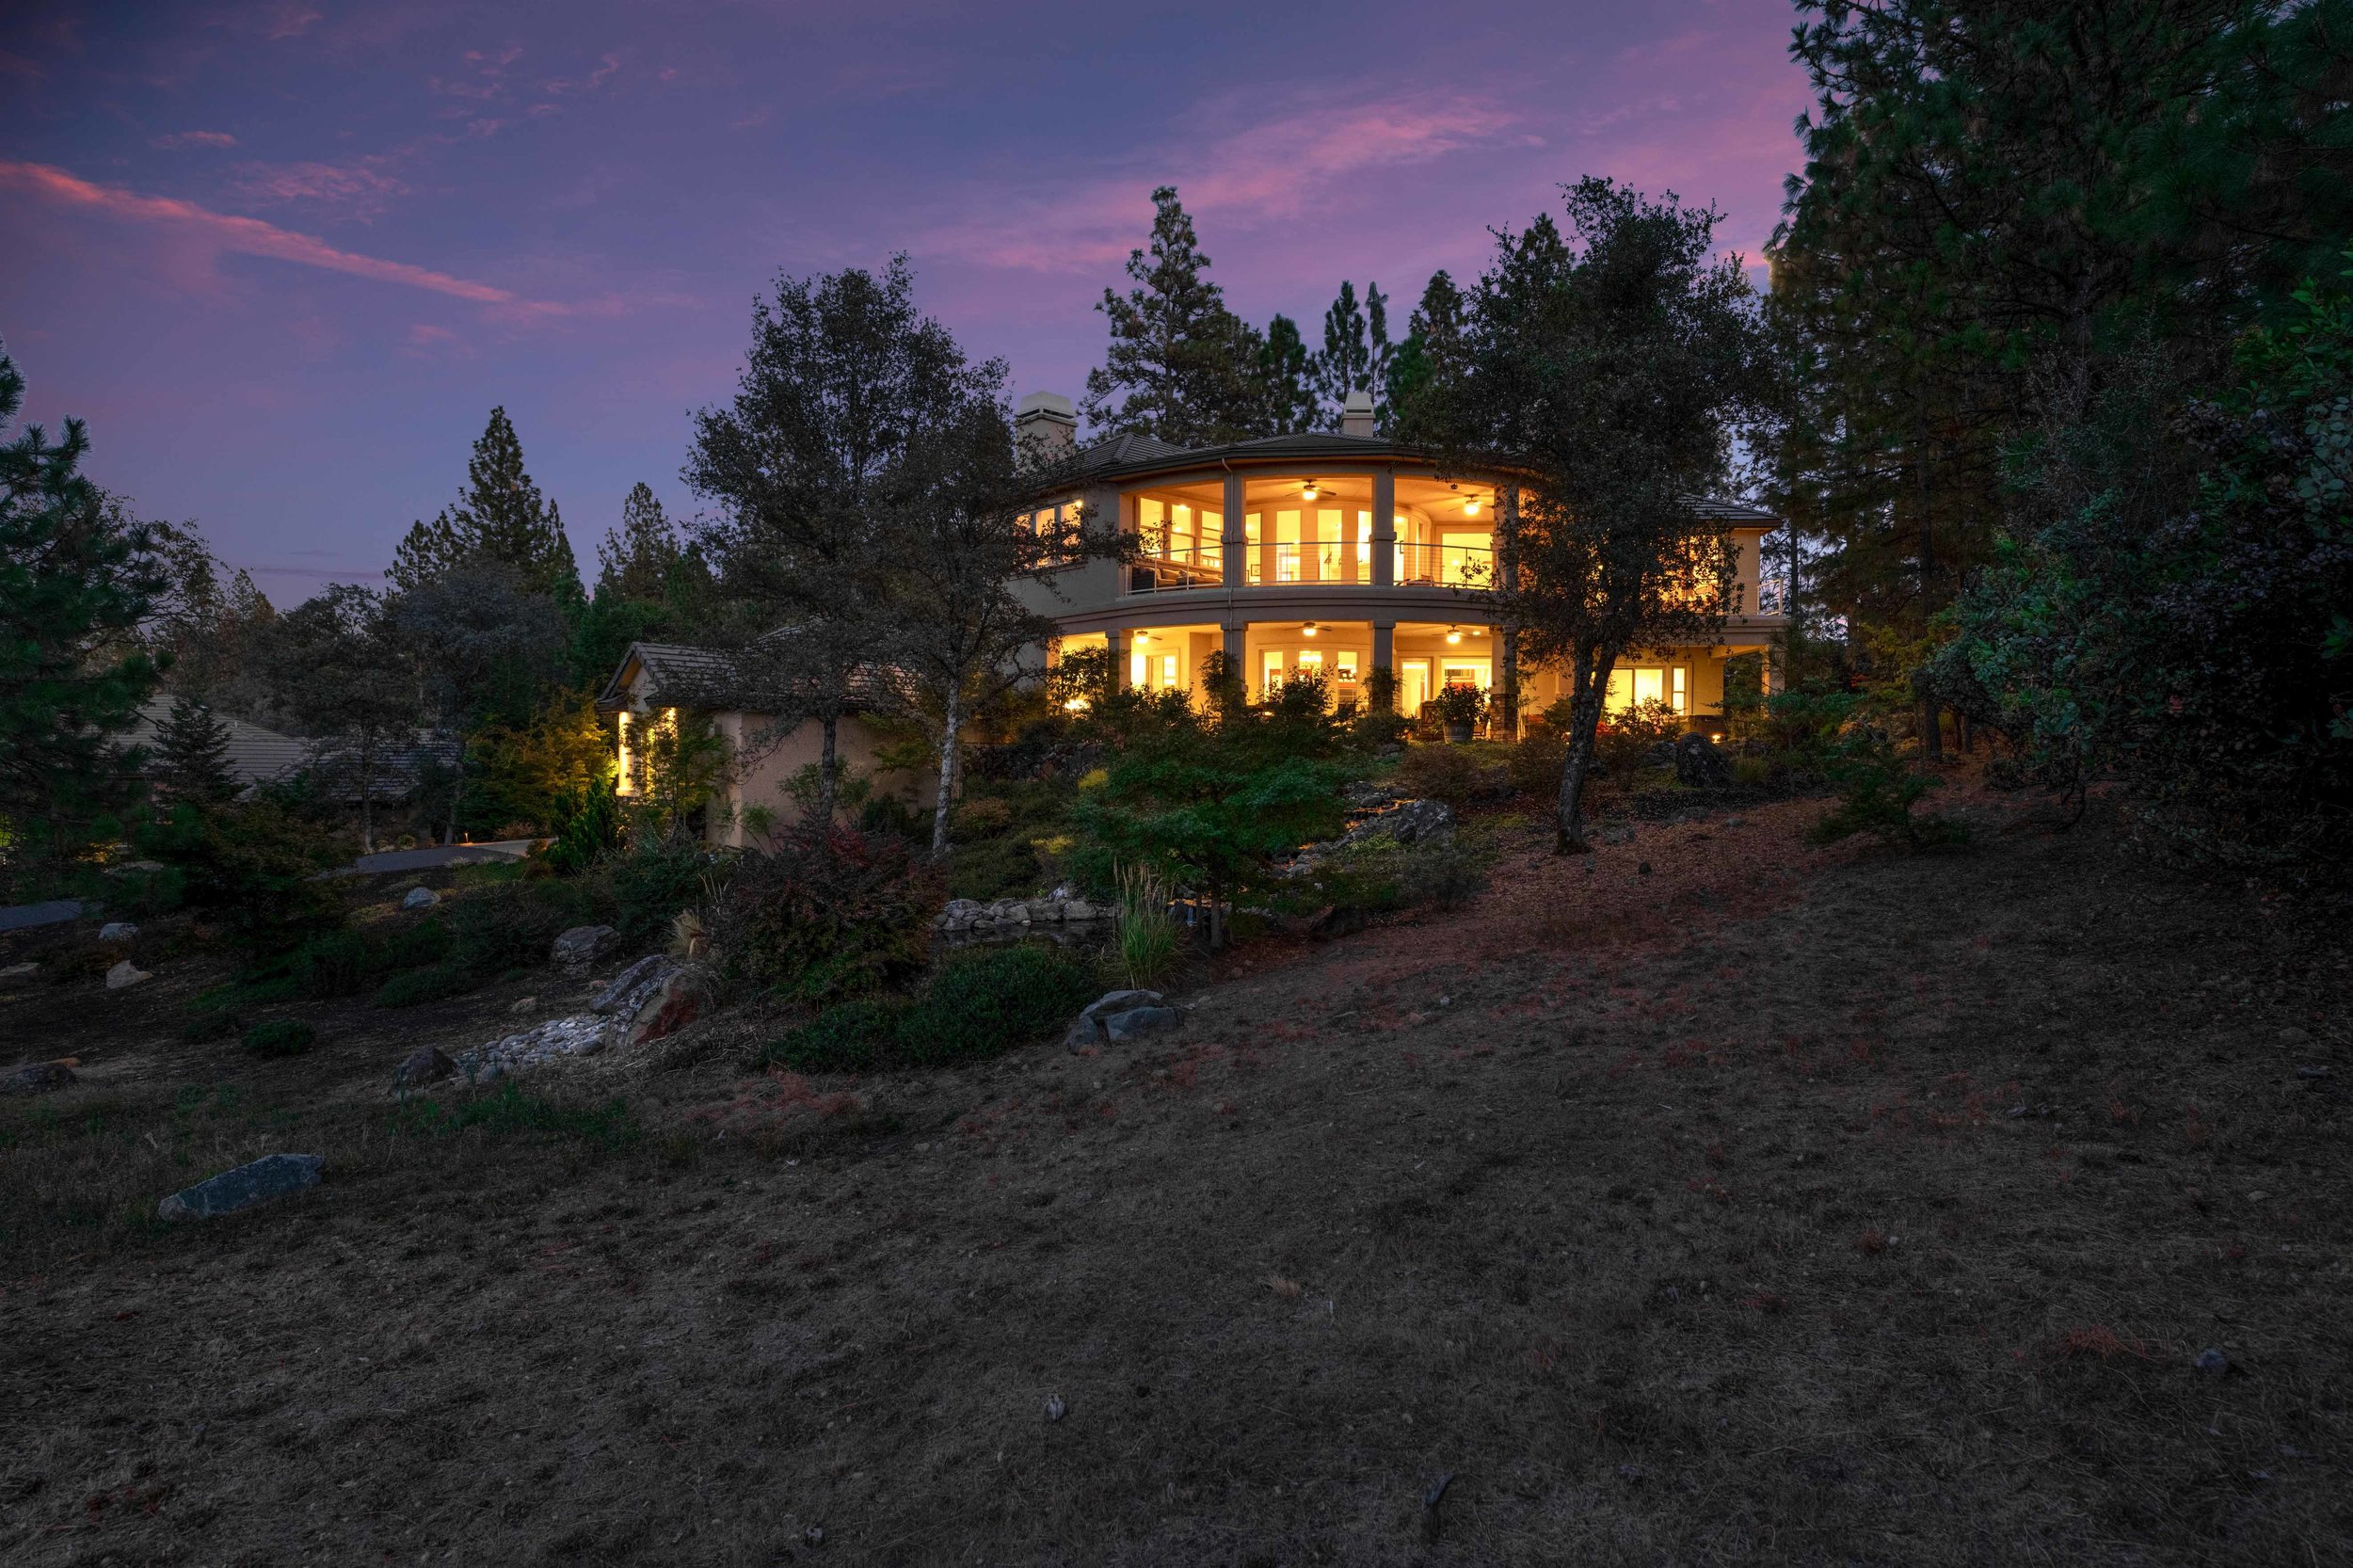 1520 Wood Duck Lane - Twilights - 18.jpg